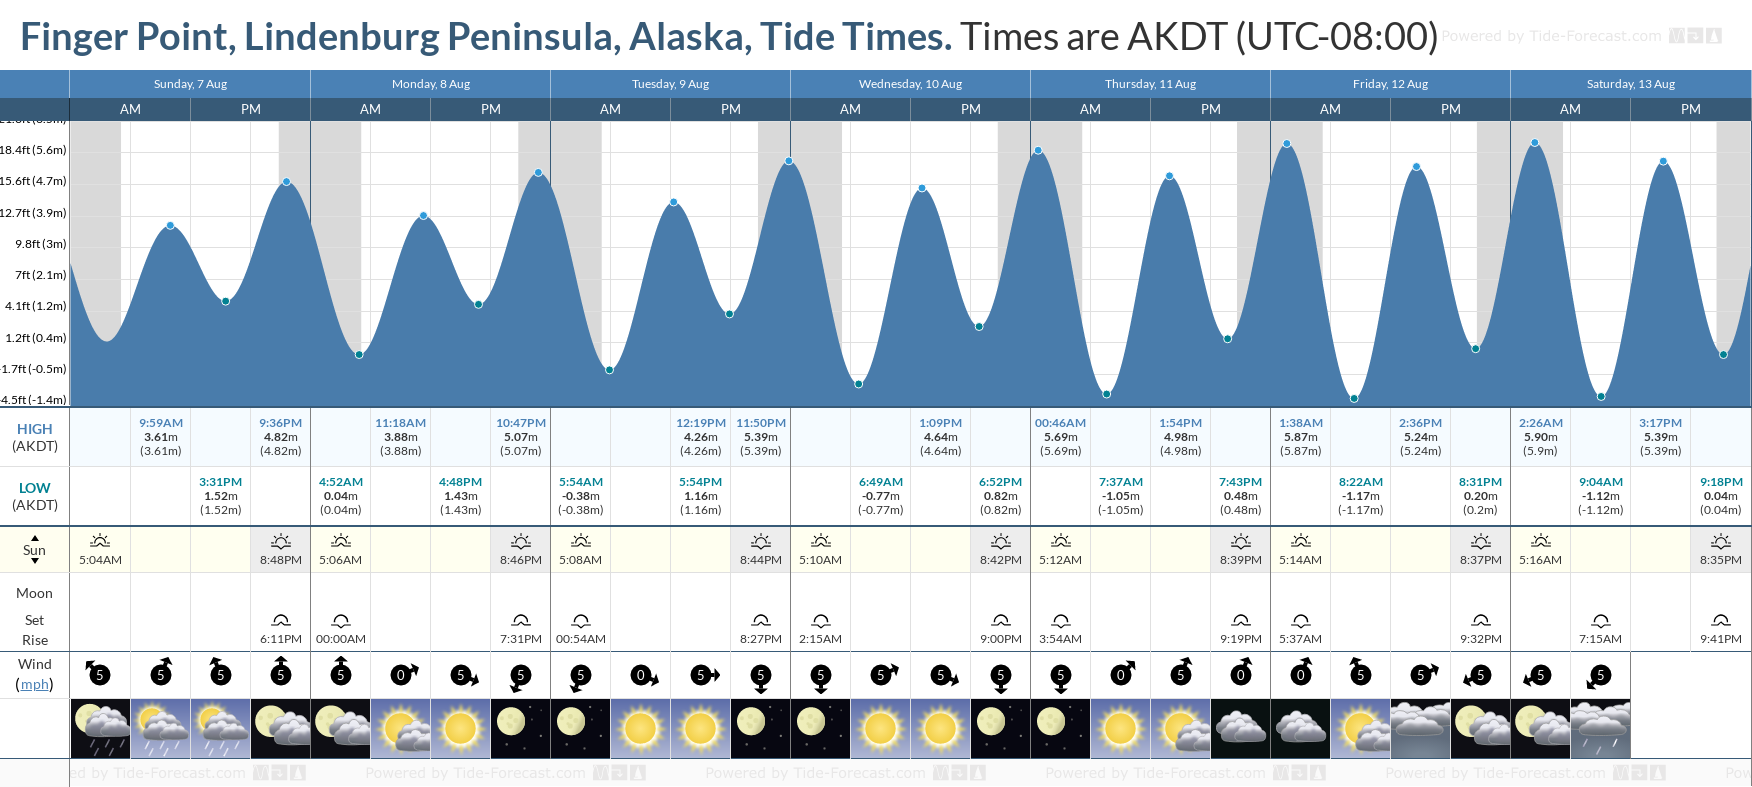 Finger Point, Lindenburg Peninsula, Alaska Tide Chart including high and low tide tide times for the next 7 days